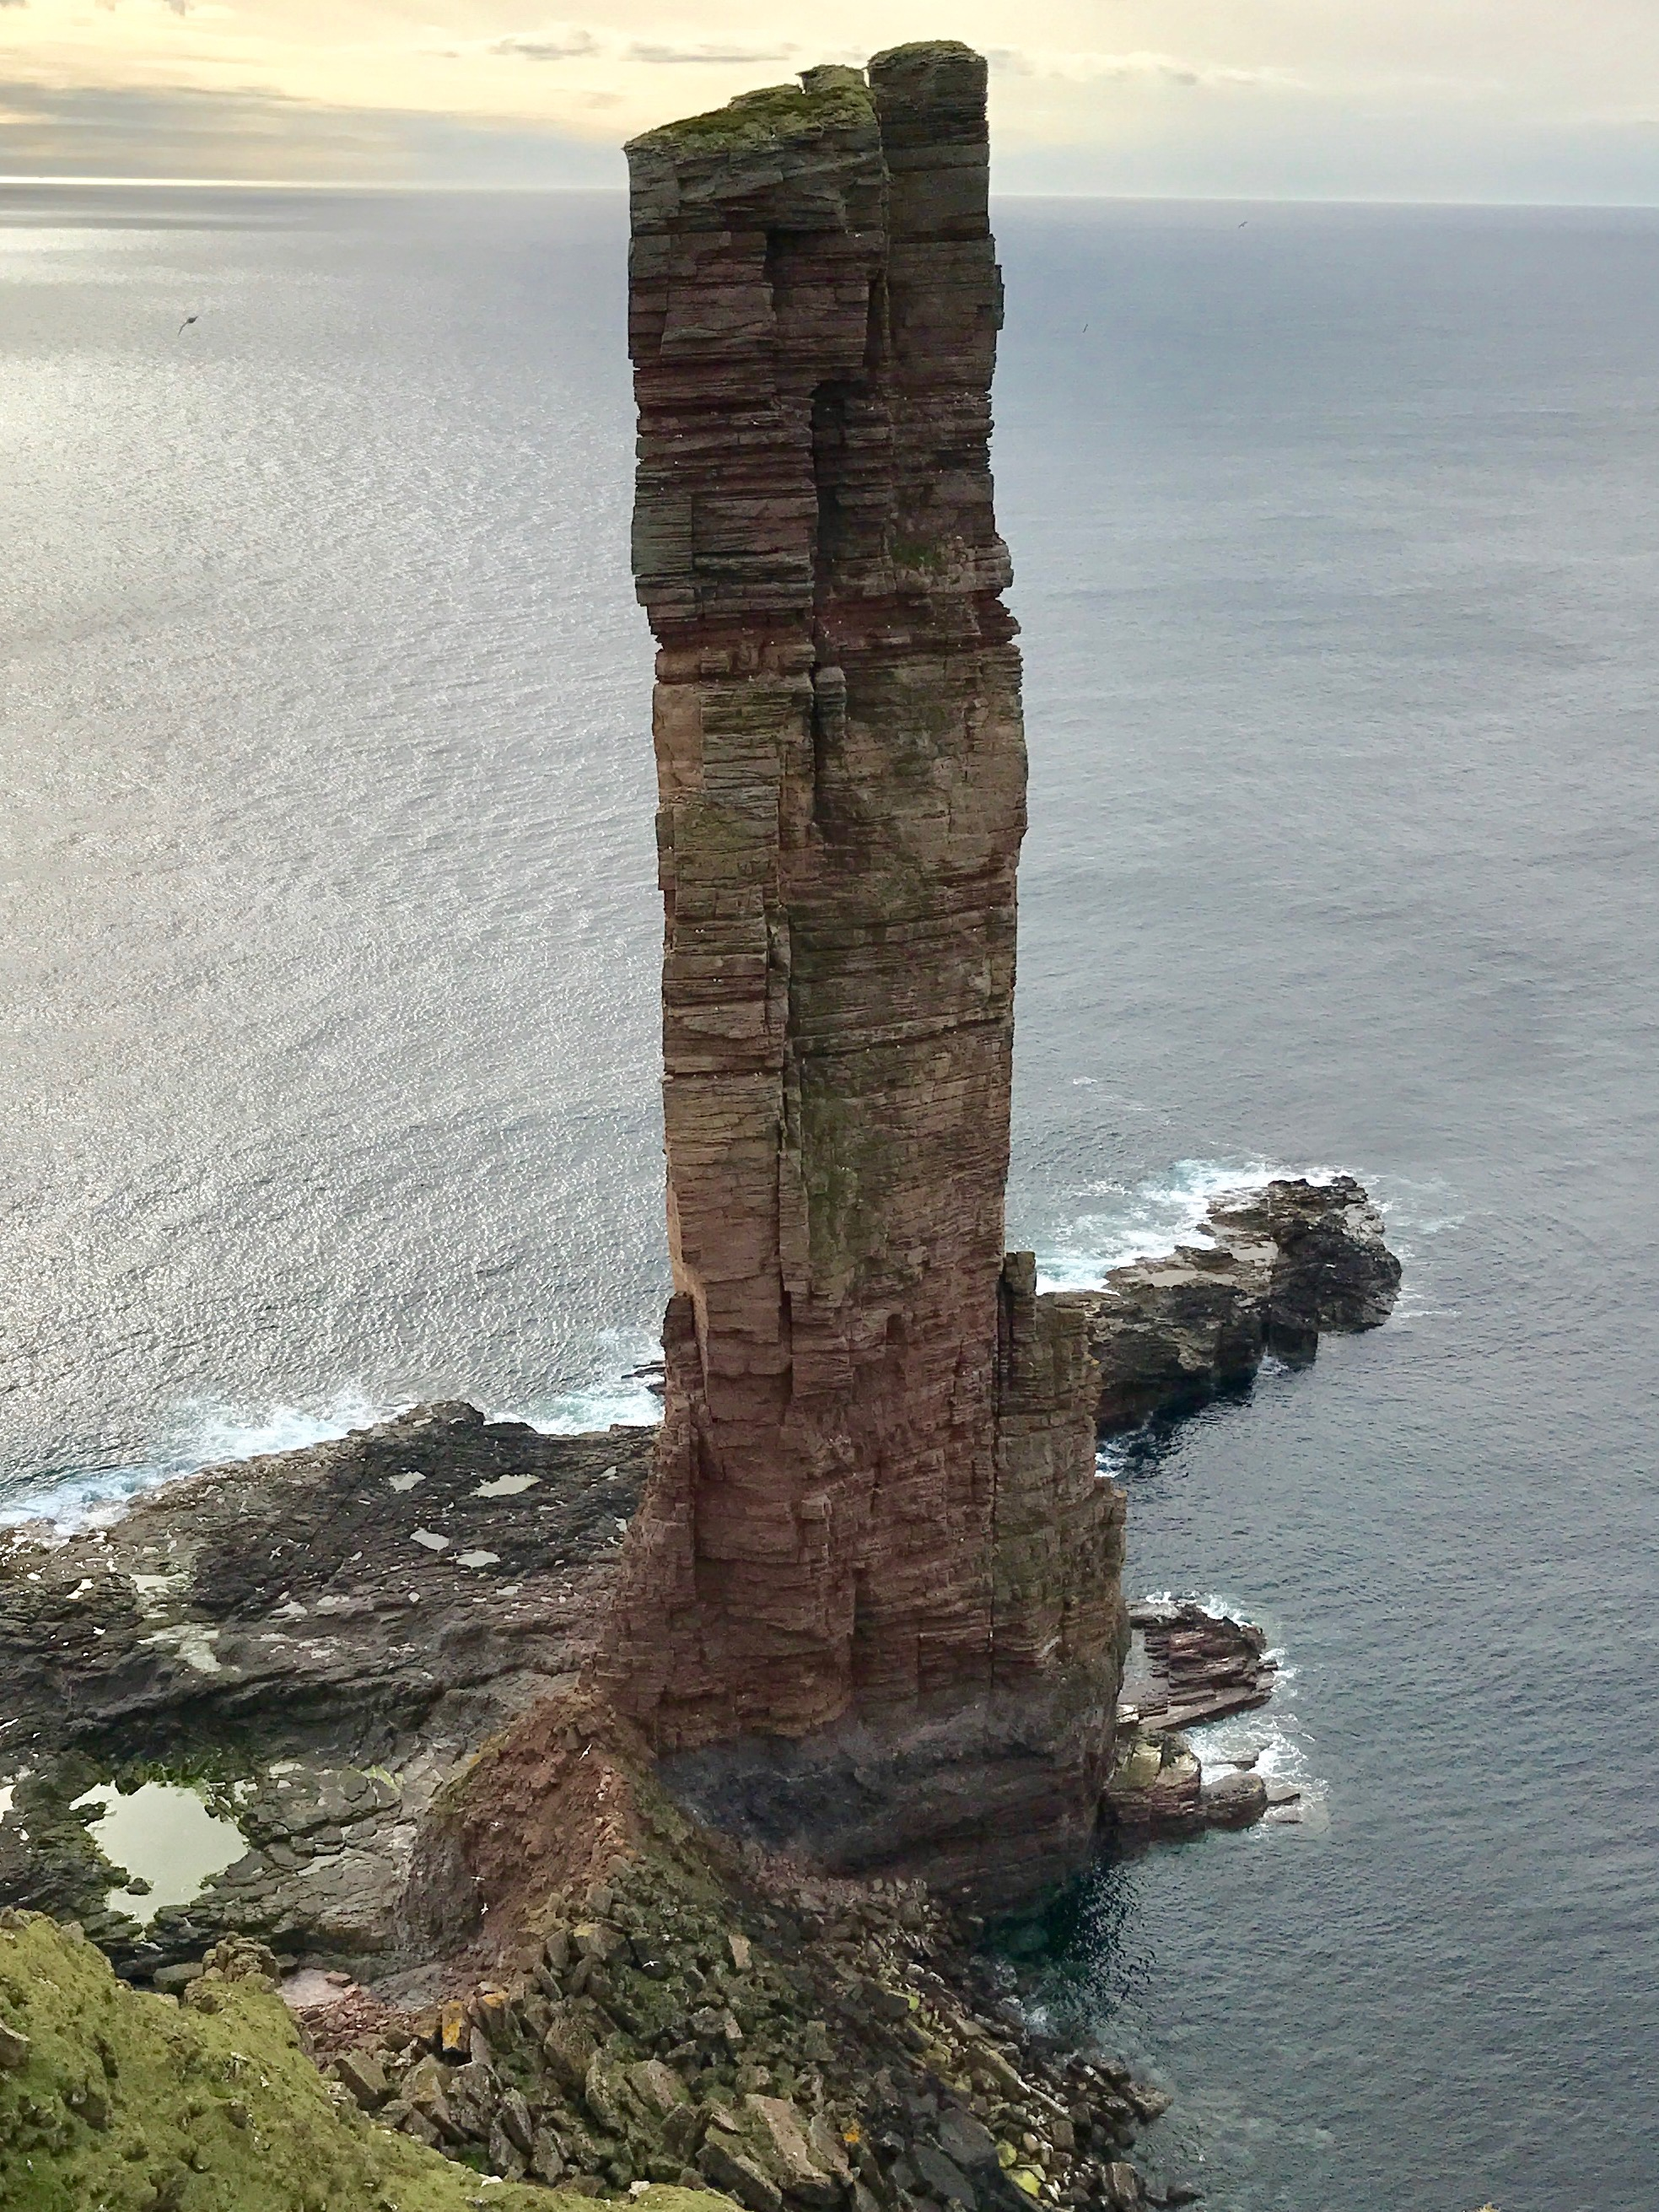 Image for article THE OLD MAN. BRITAIN'S GREATEST CLIMB?